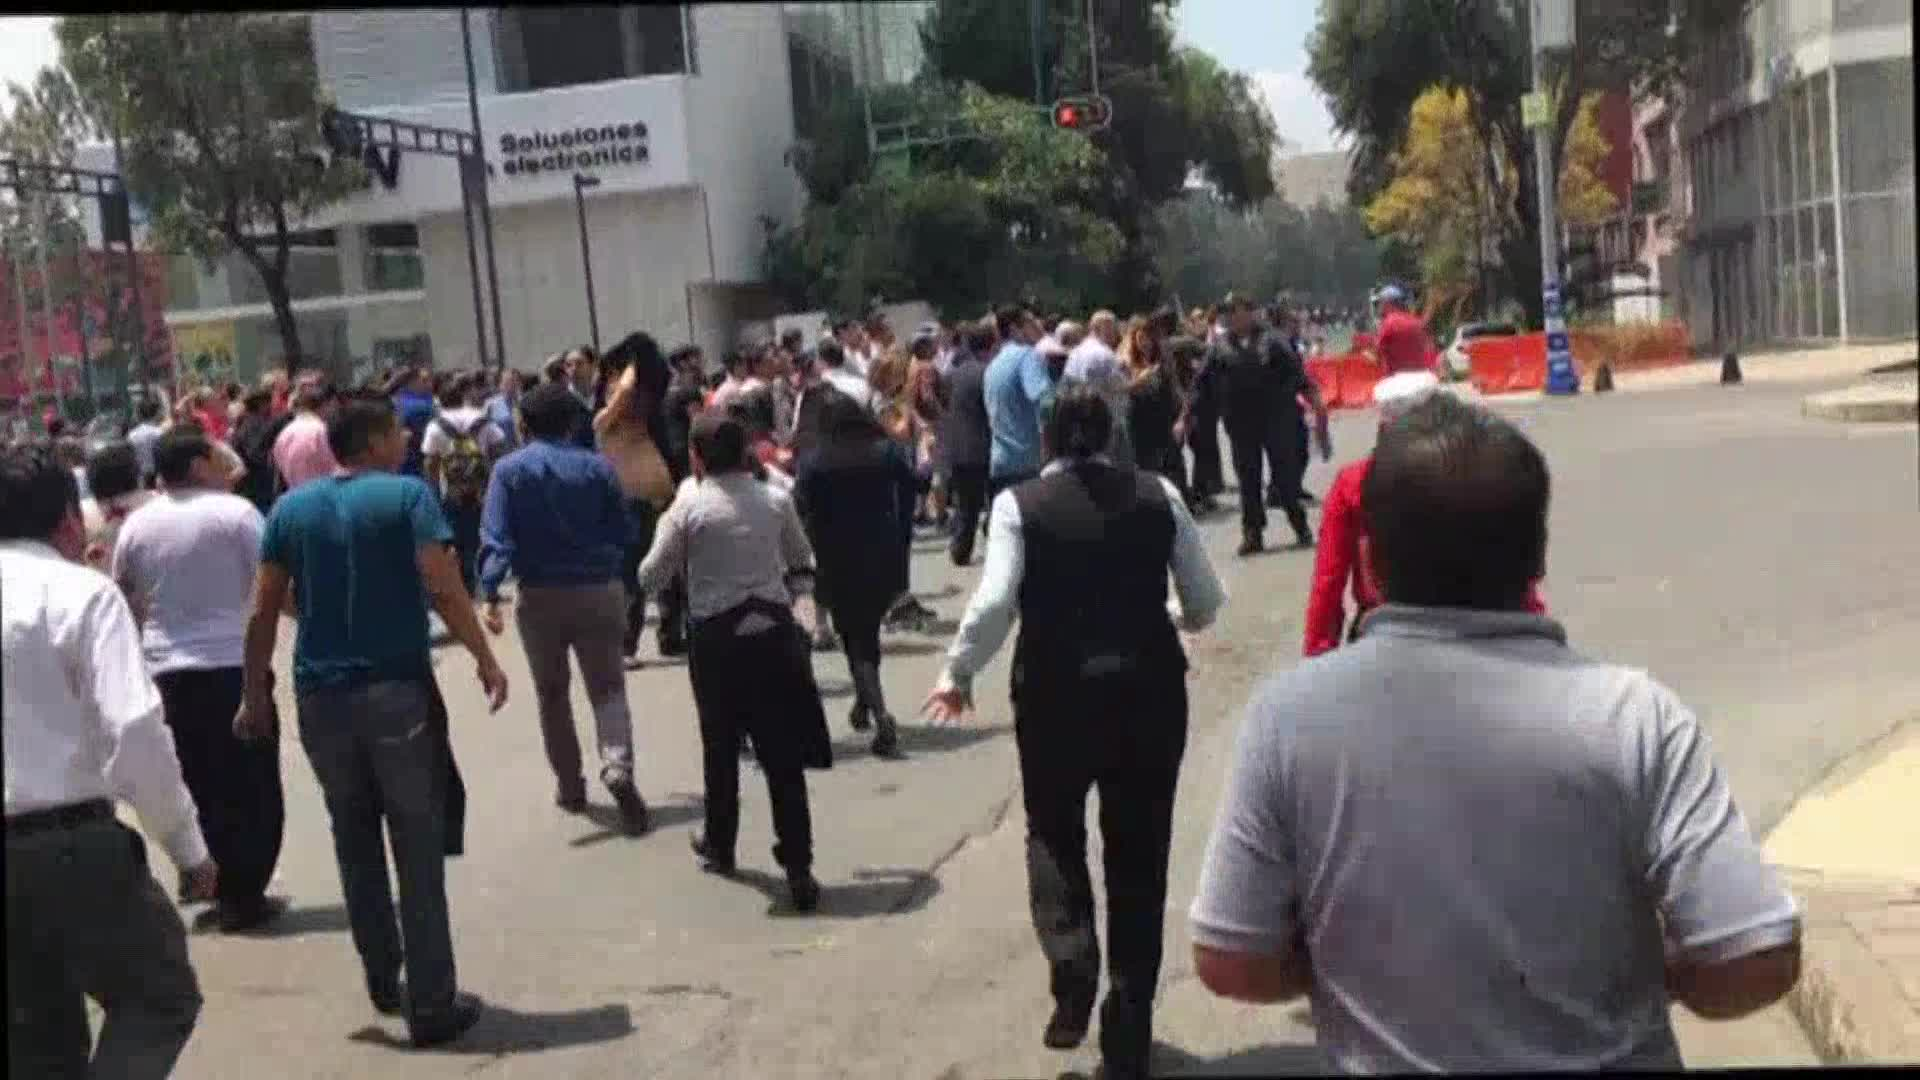 Magnitude 7.1 earthquake hits Mexico City